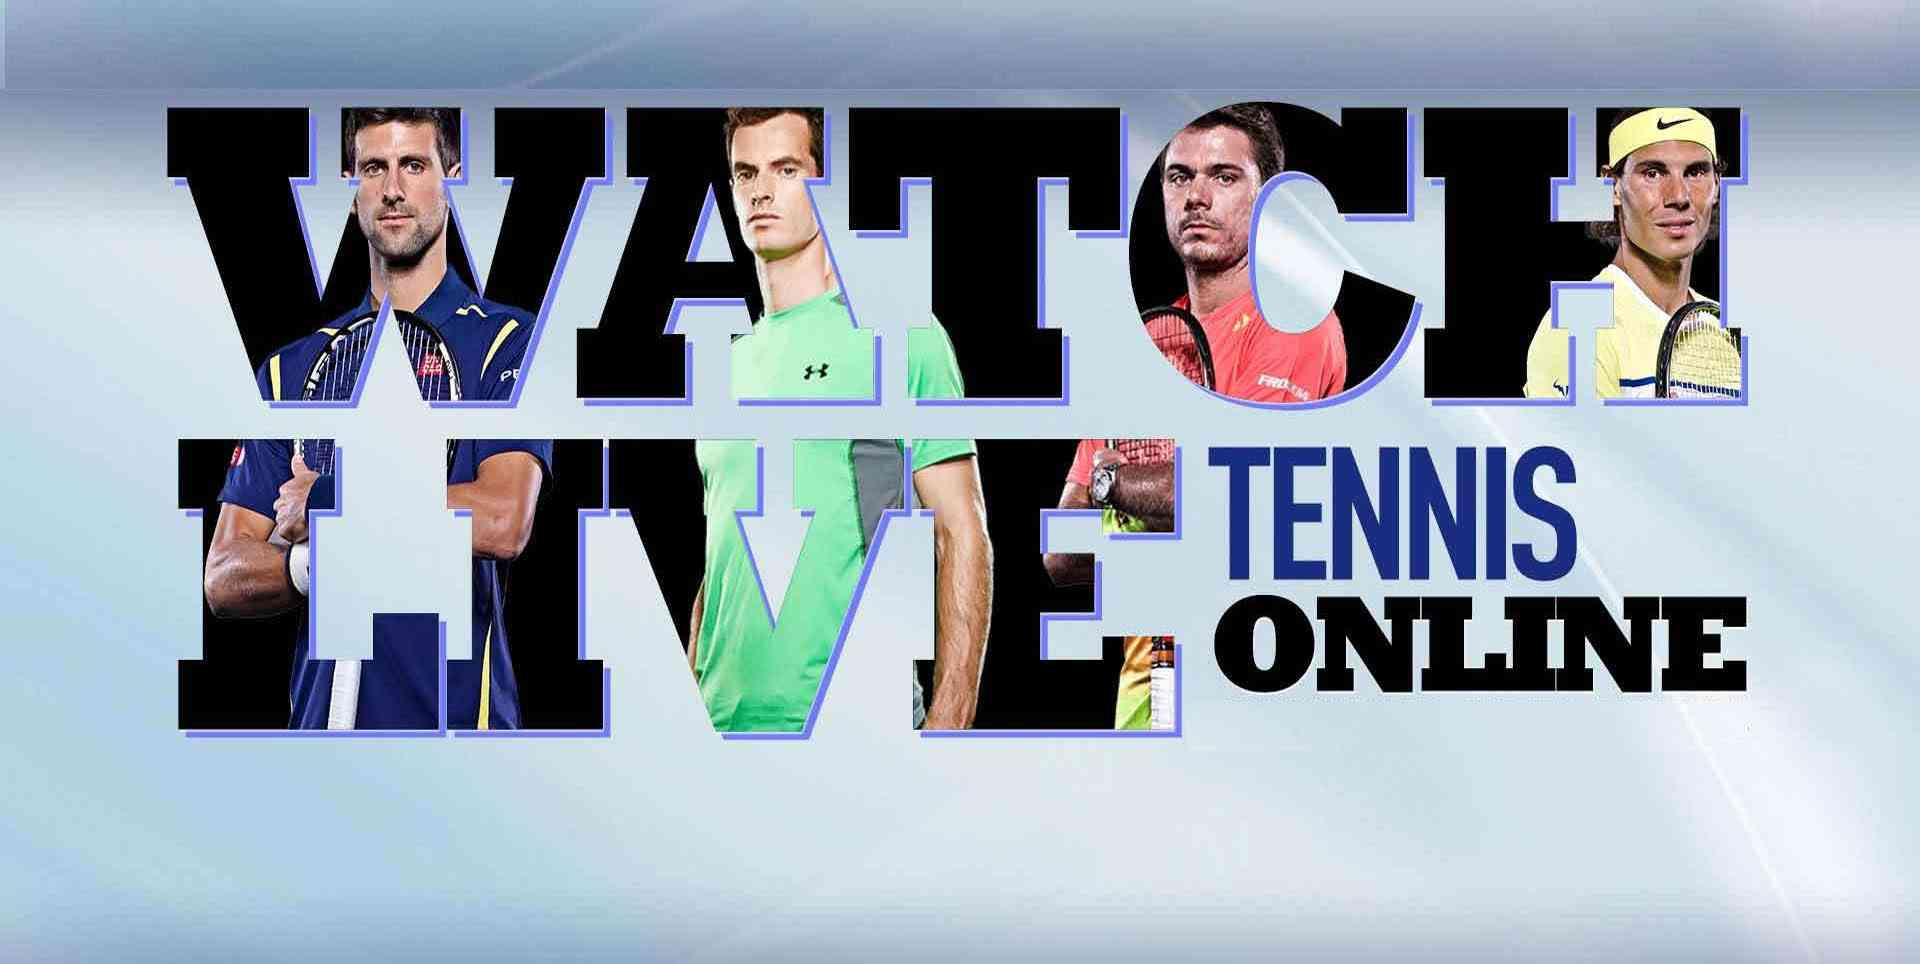 Watch V. Pospisil | J. Sock vs L. Paes | R. Stepanek Semi Final Online